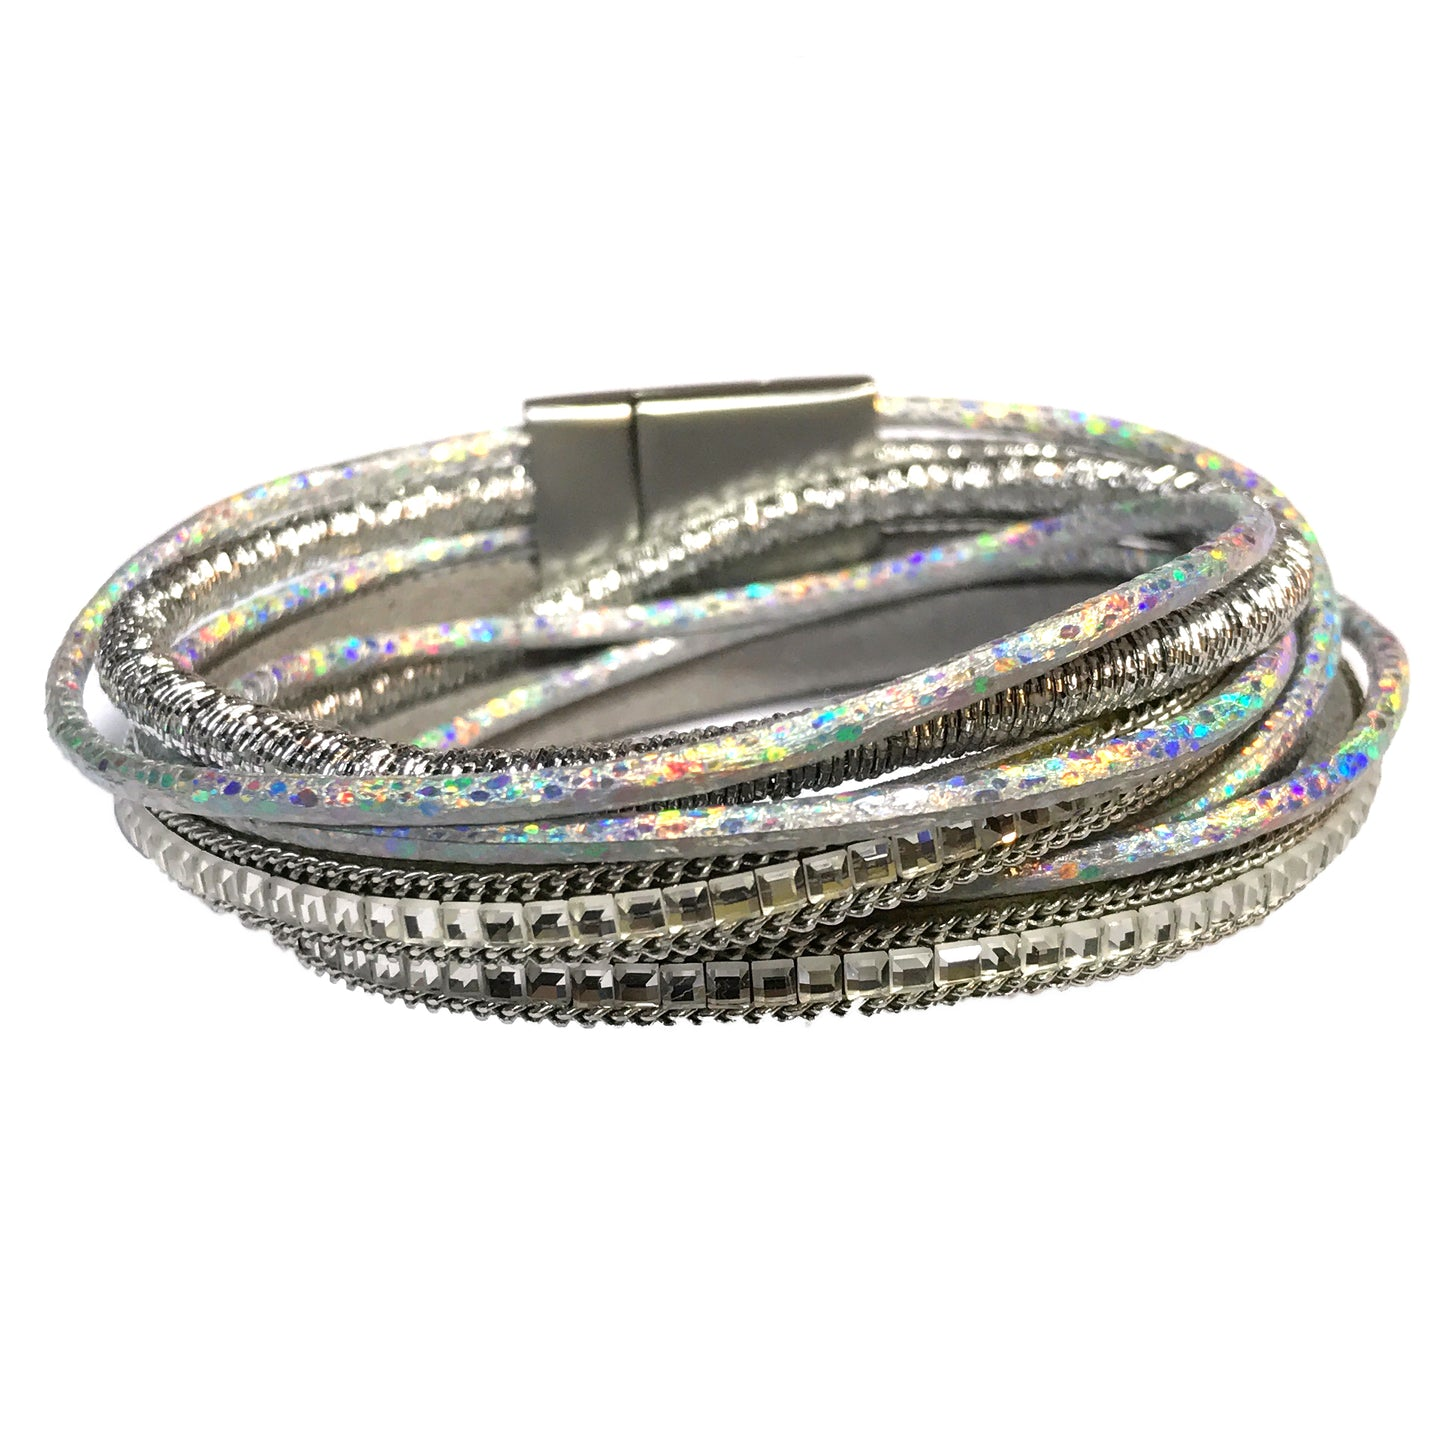 Wrap Bracelet 4 strand Leather Metallic Silver